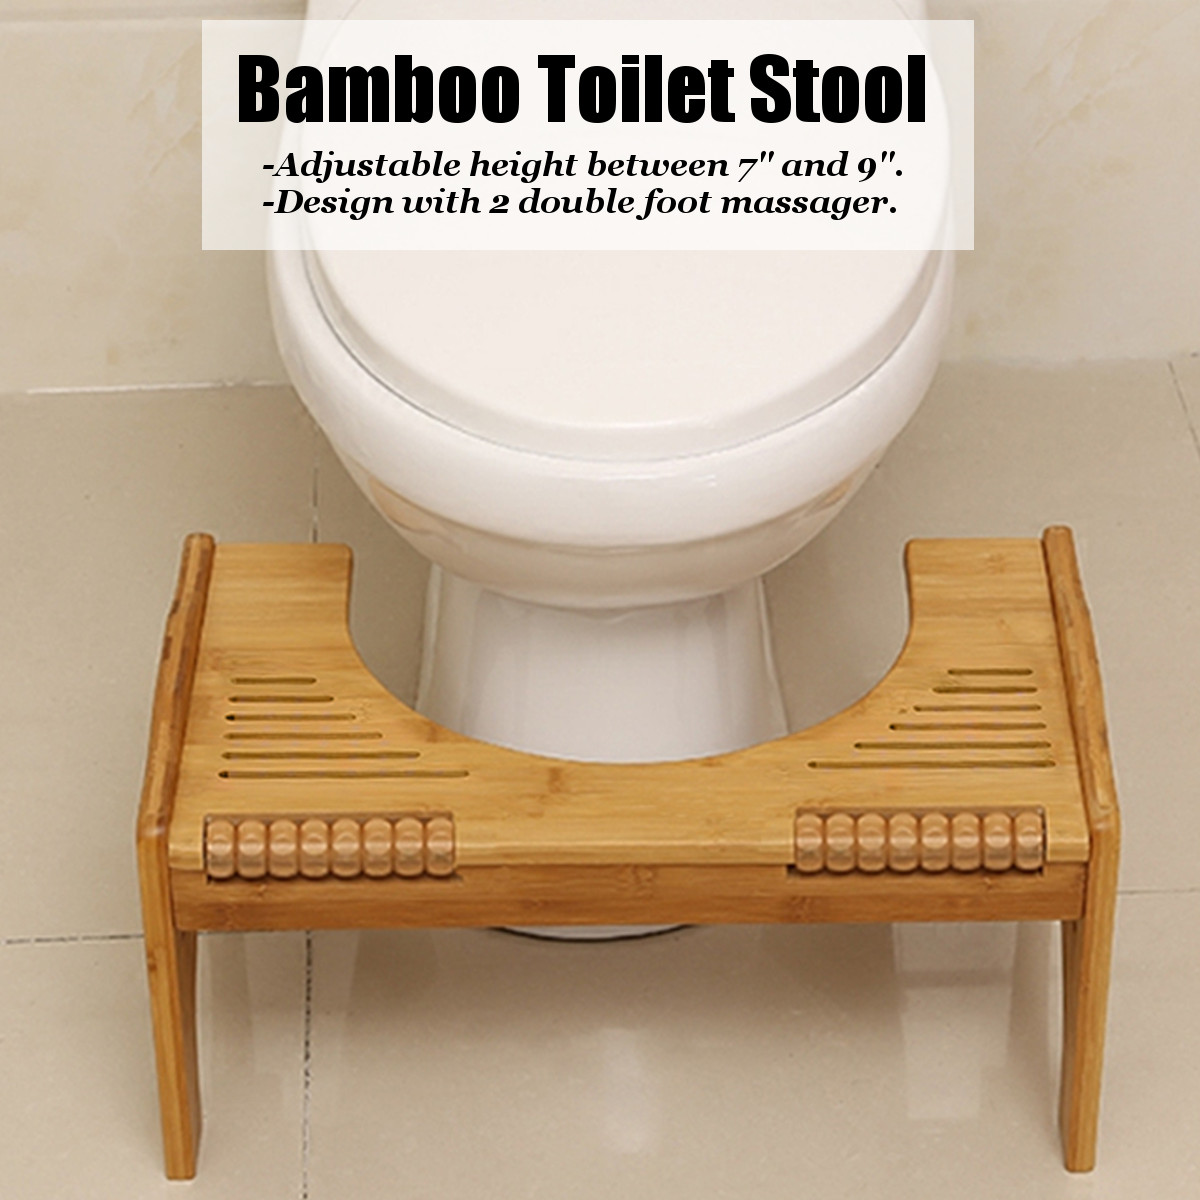 Groovy Us 35 21 9 Off Wooden Thicken Round Toilet Foot Stool Home Crouch Hole Bench Tool Elderly Constipation Assistant Bathroom Potty Step Foot Stool In Alphanode Cool Chair Designs And Ideas Alphanodeonline